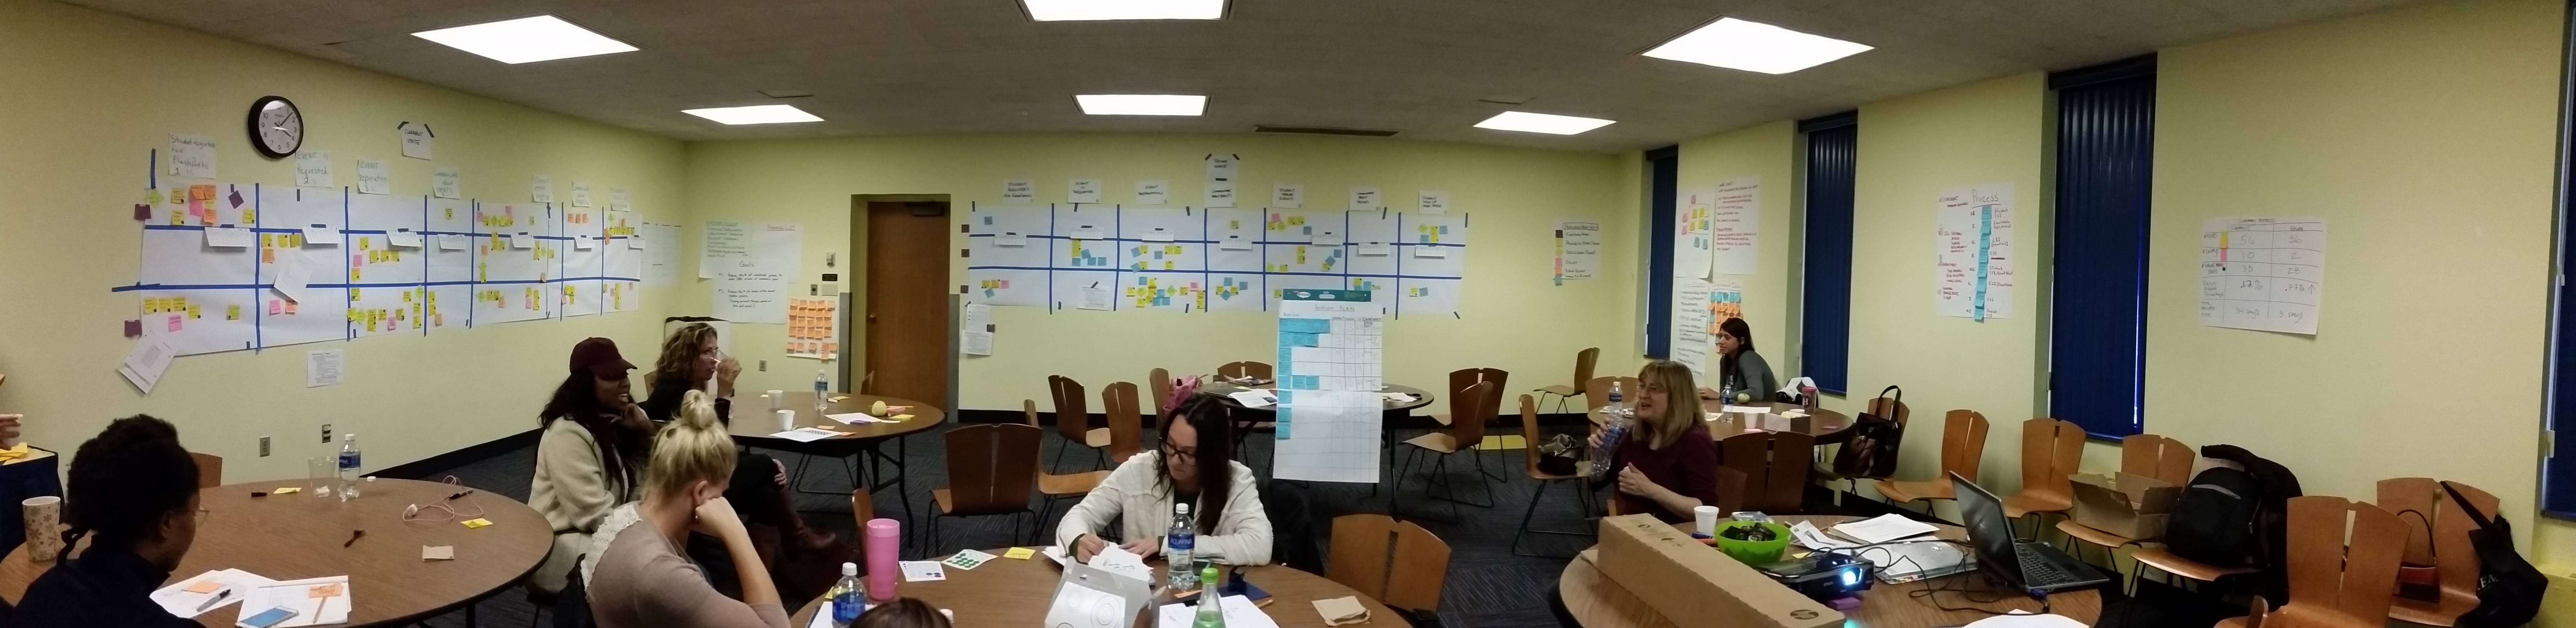 Process mapping during a process improvement event.